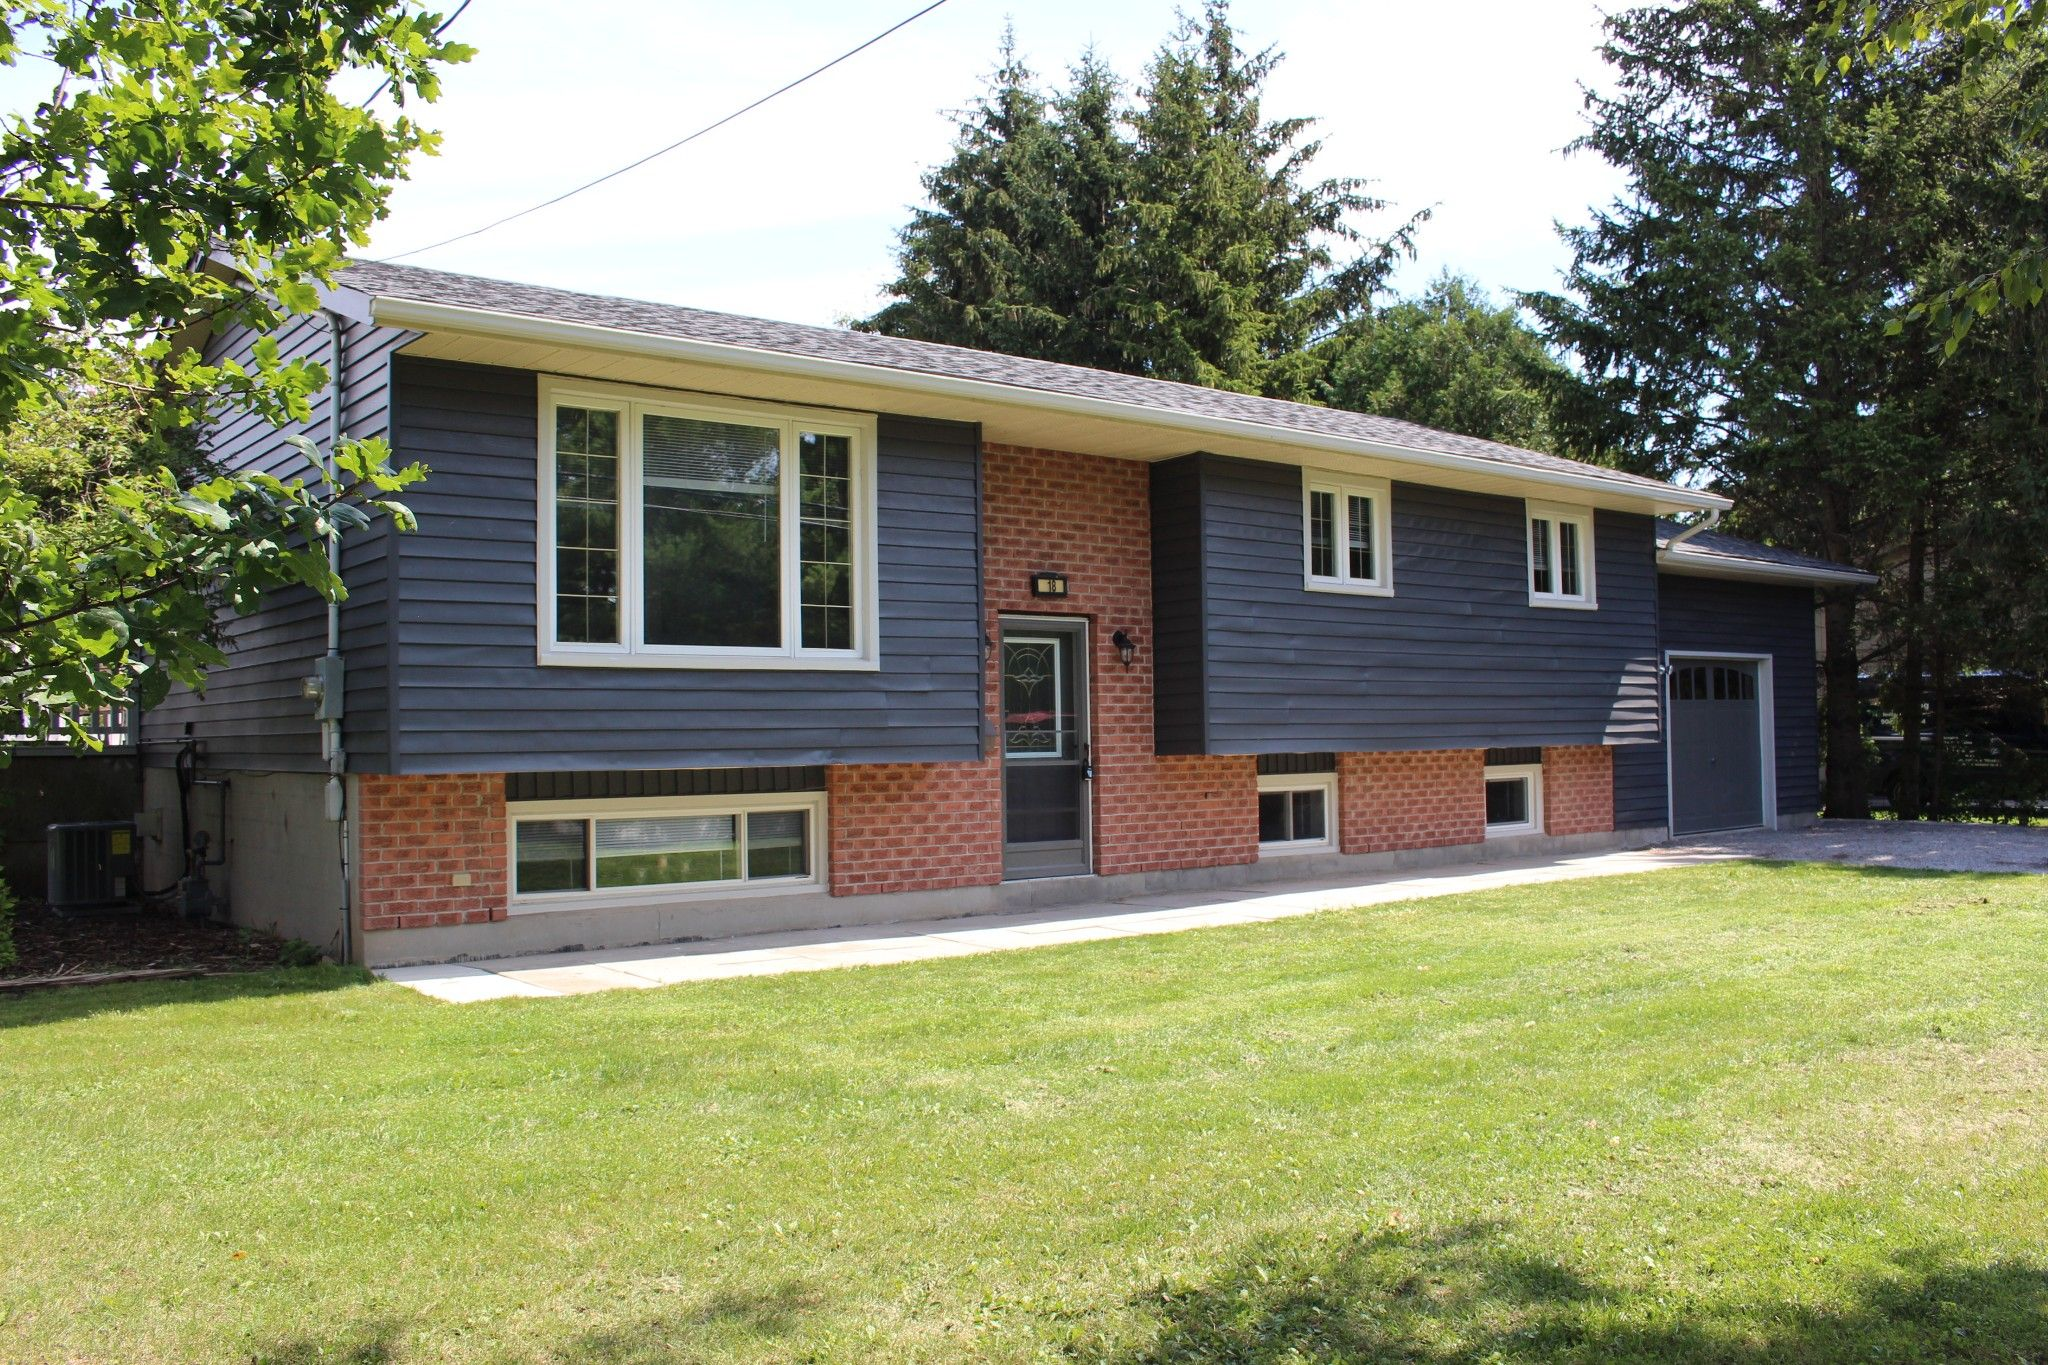 Main Photo: 18 Maplewood Boulevard in Cobourg: House for sale : MLS®# 40009417